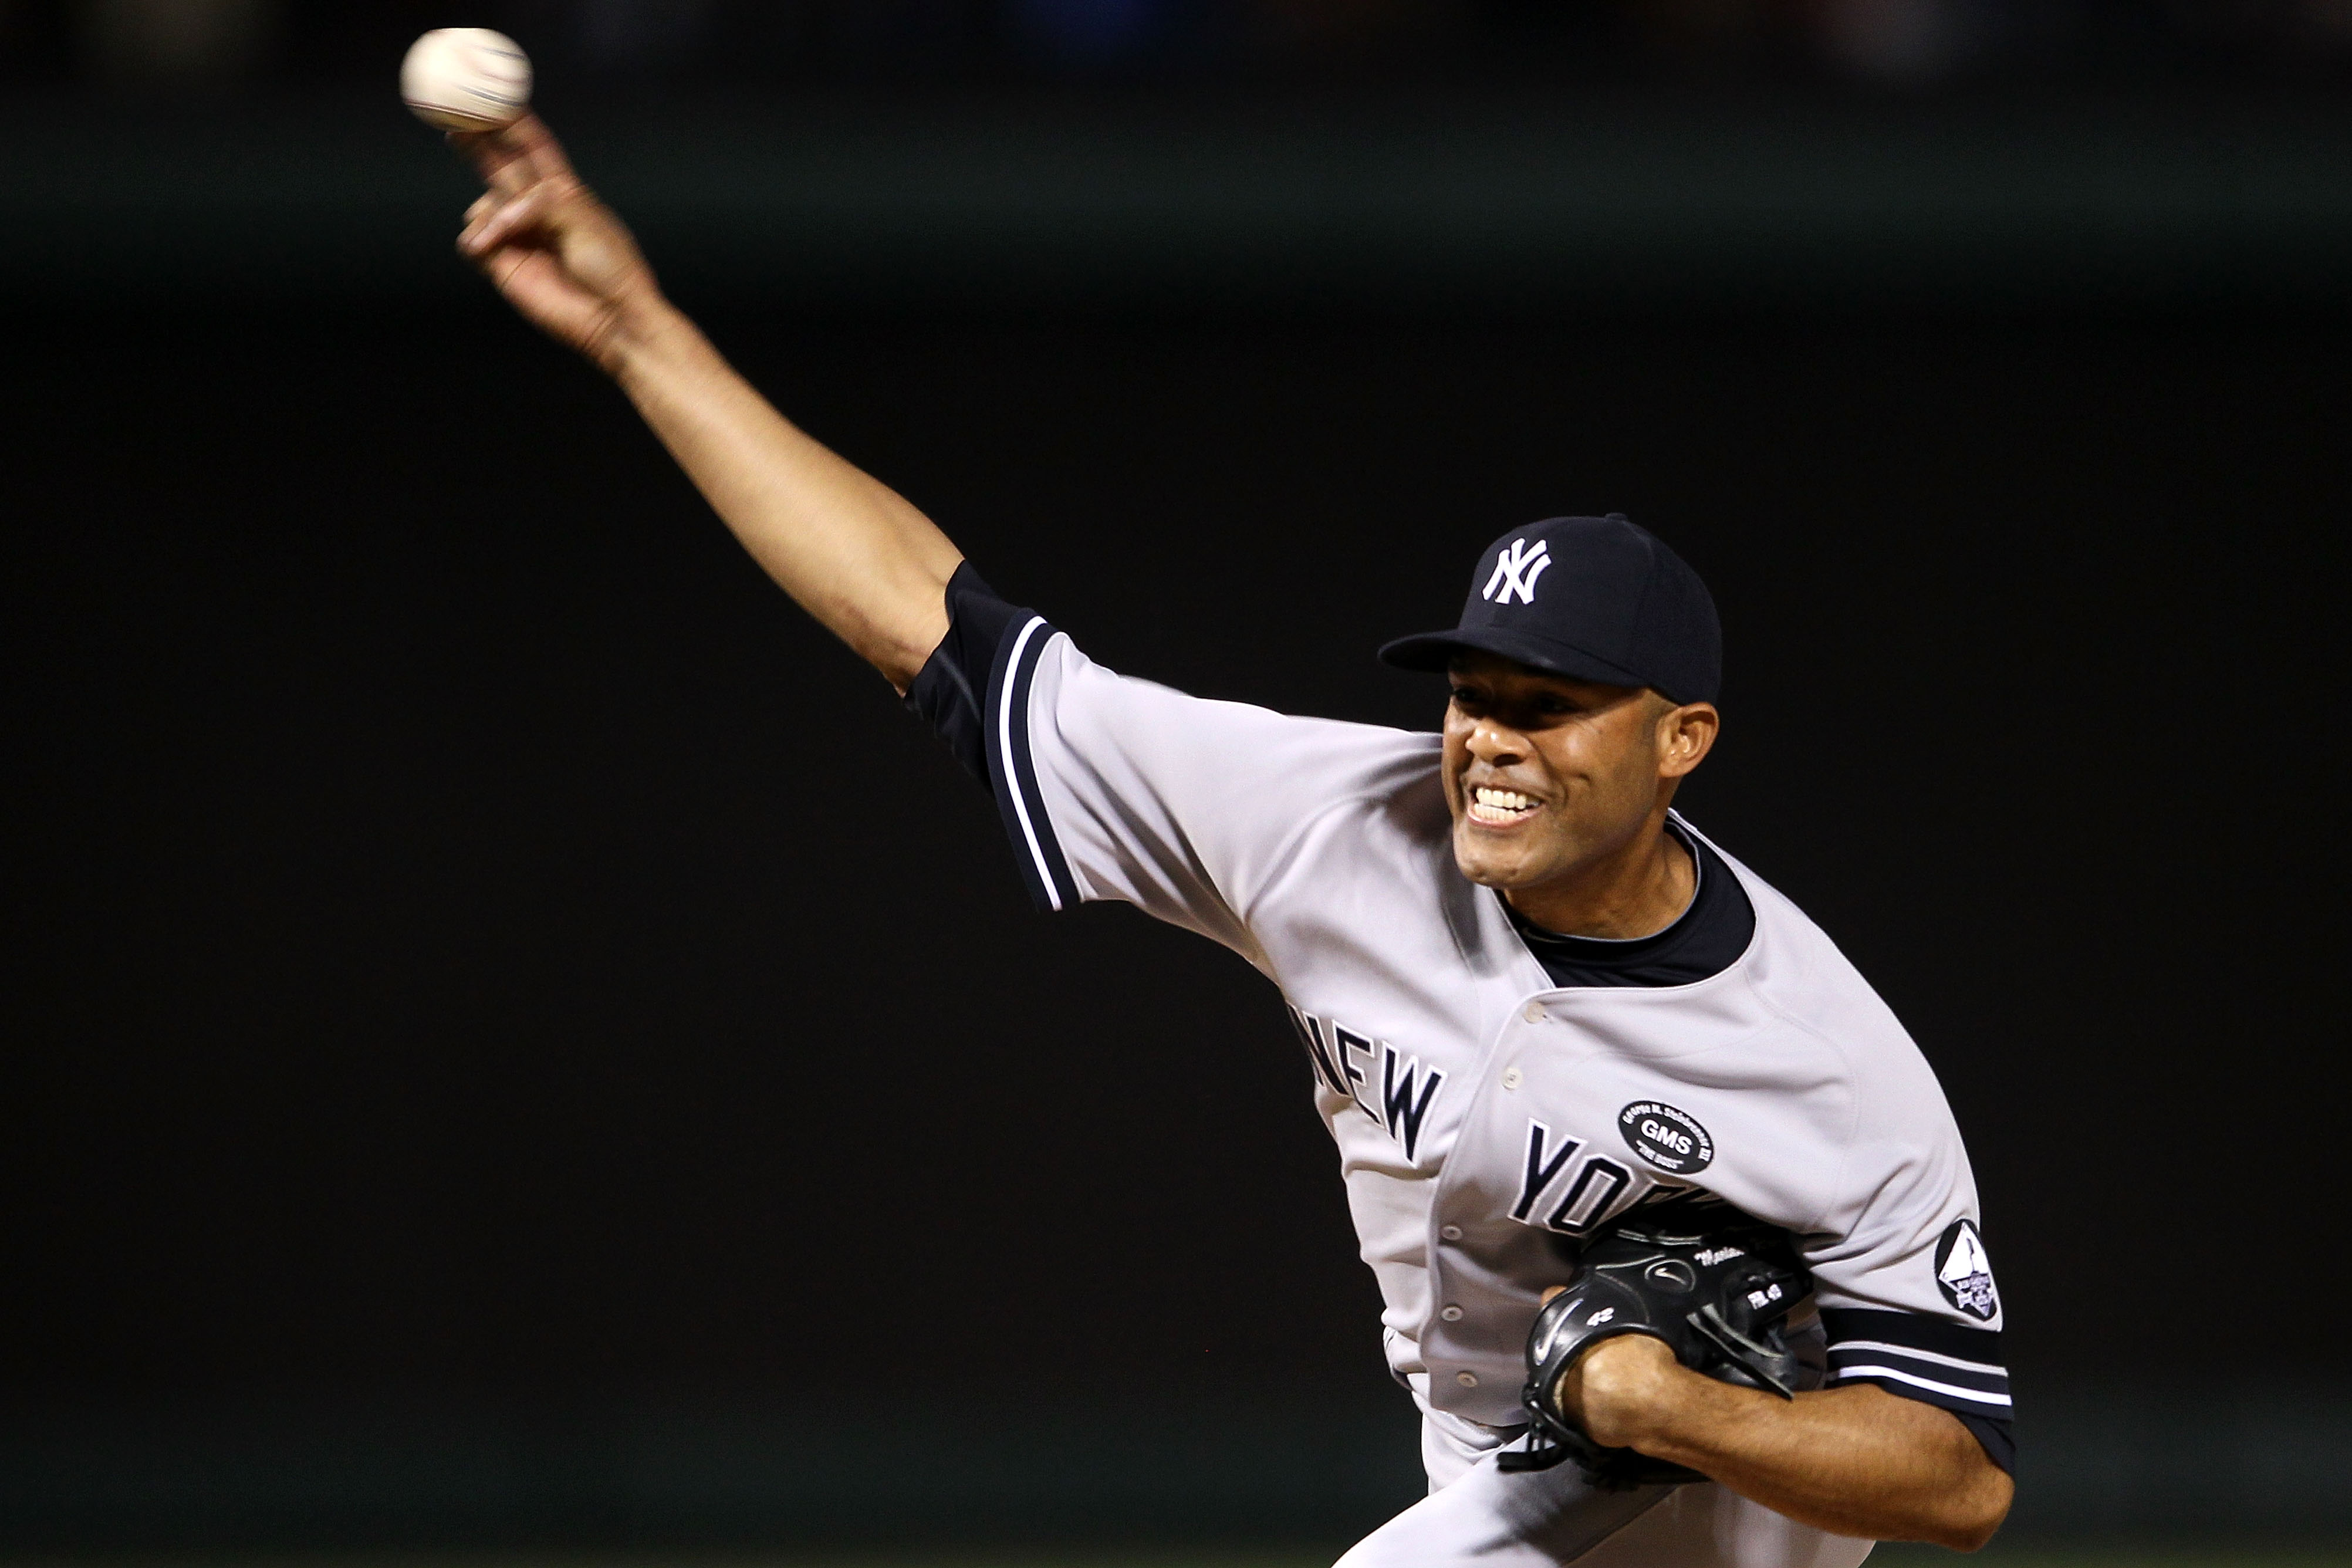 ARLINGTON, TX - OCTOBER 22:  Mariano Rivera #42 of the New York Yankees throws a pitch against the Texas Rangers in Game Six of the ALCS during the 2010 MLB Playoffs at Rangers Ballpark in Arlington on October 22, 2010 in Arlington, Texas.  (Photo by Elsa